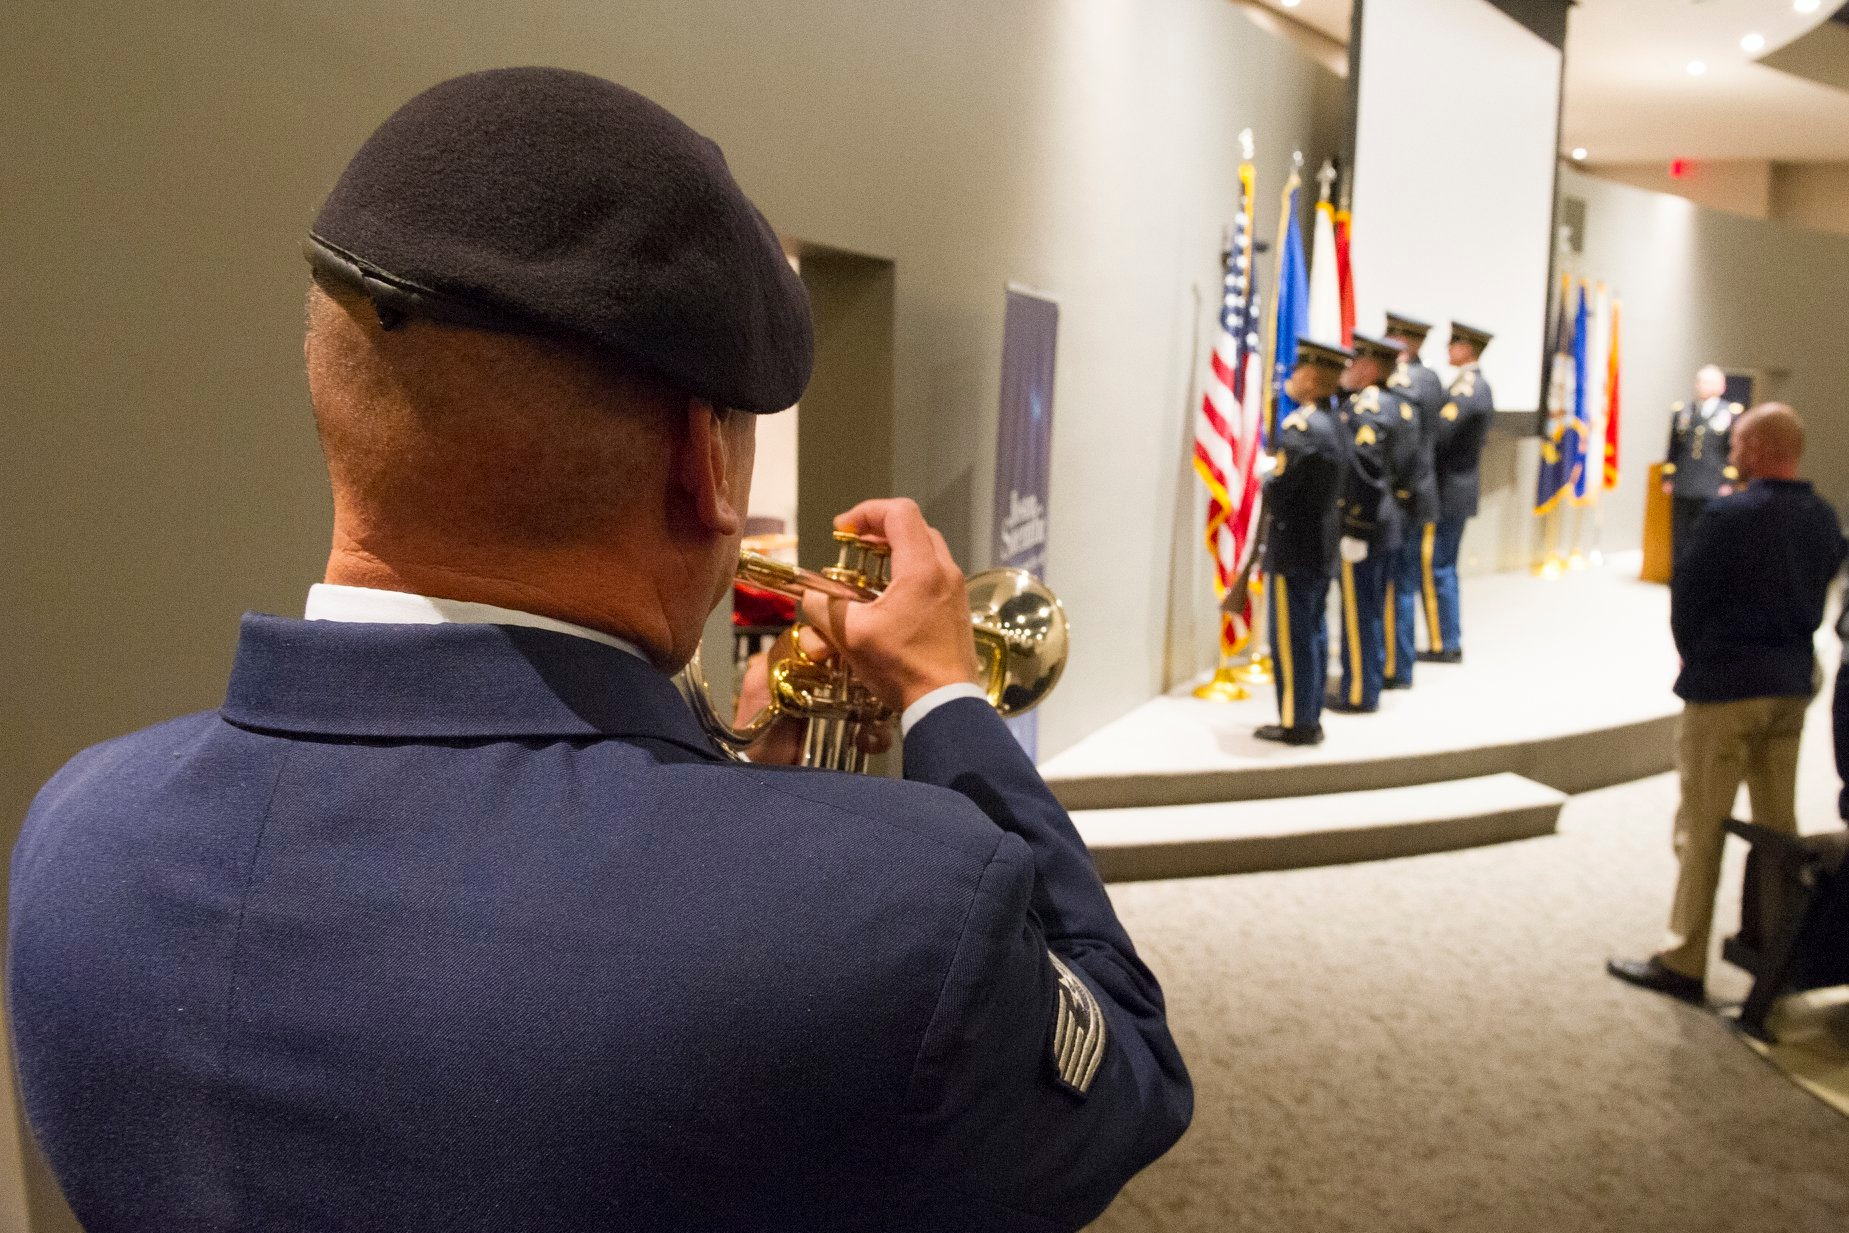 934th Airmen plays national anthem at Yellow Ribbon Ceremony